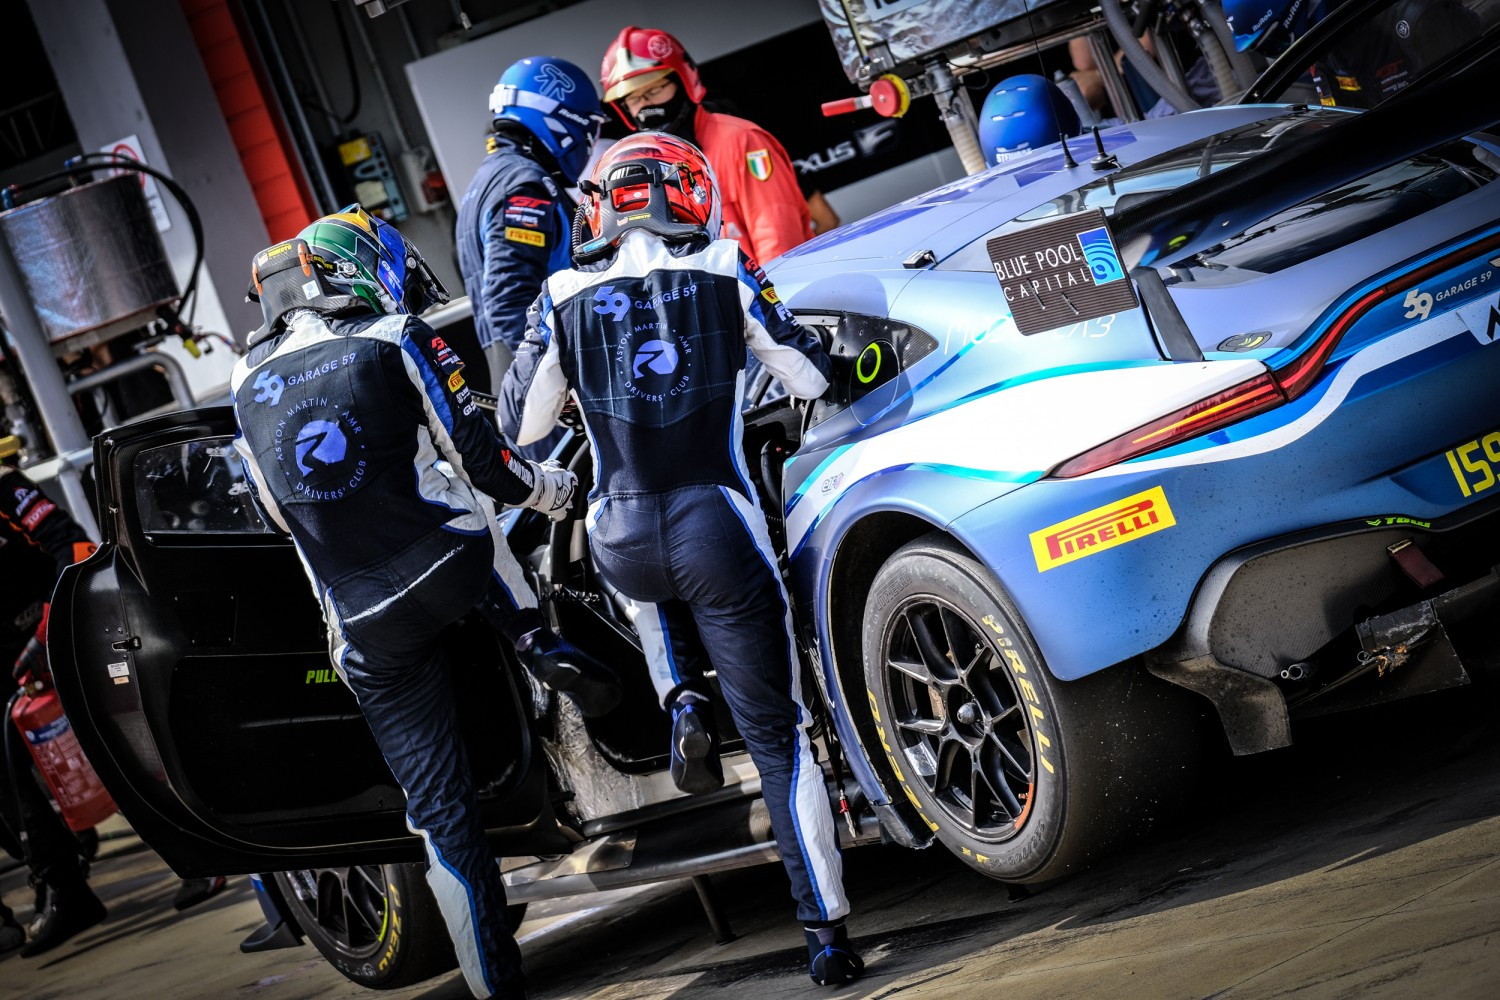 #159 Garage 59 GBR Aston Martin Vantage AMR GT3 Silver Cup Valentin Hasse Clot FRA - - Andrew Watson GBR, Pitlane, Race  | SRO / Dirk Bogaerts Photography